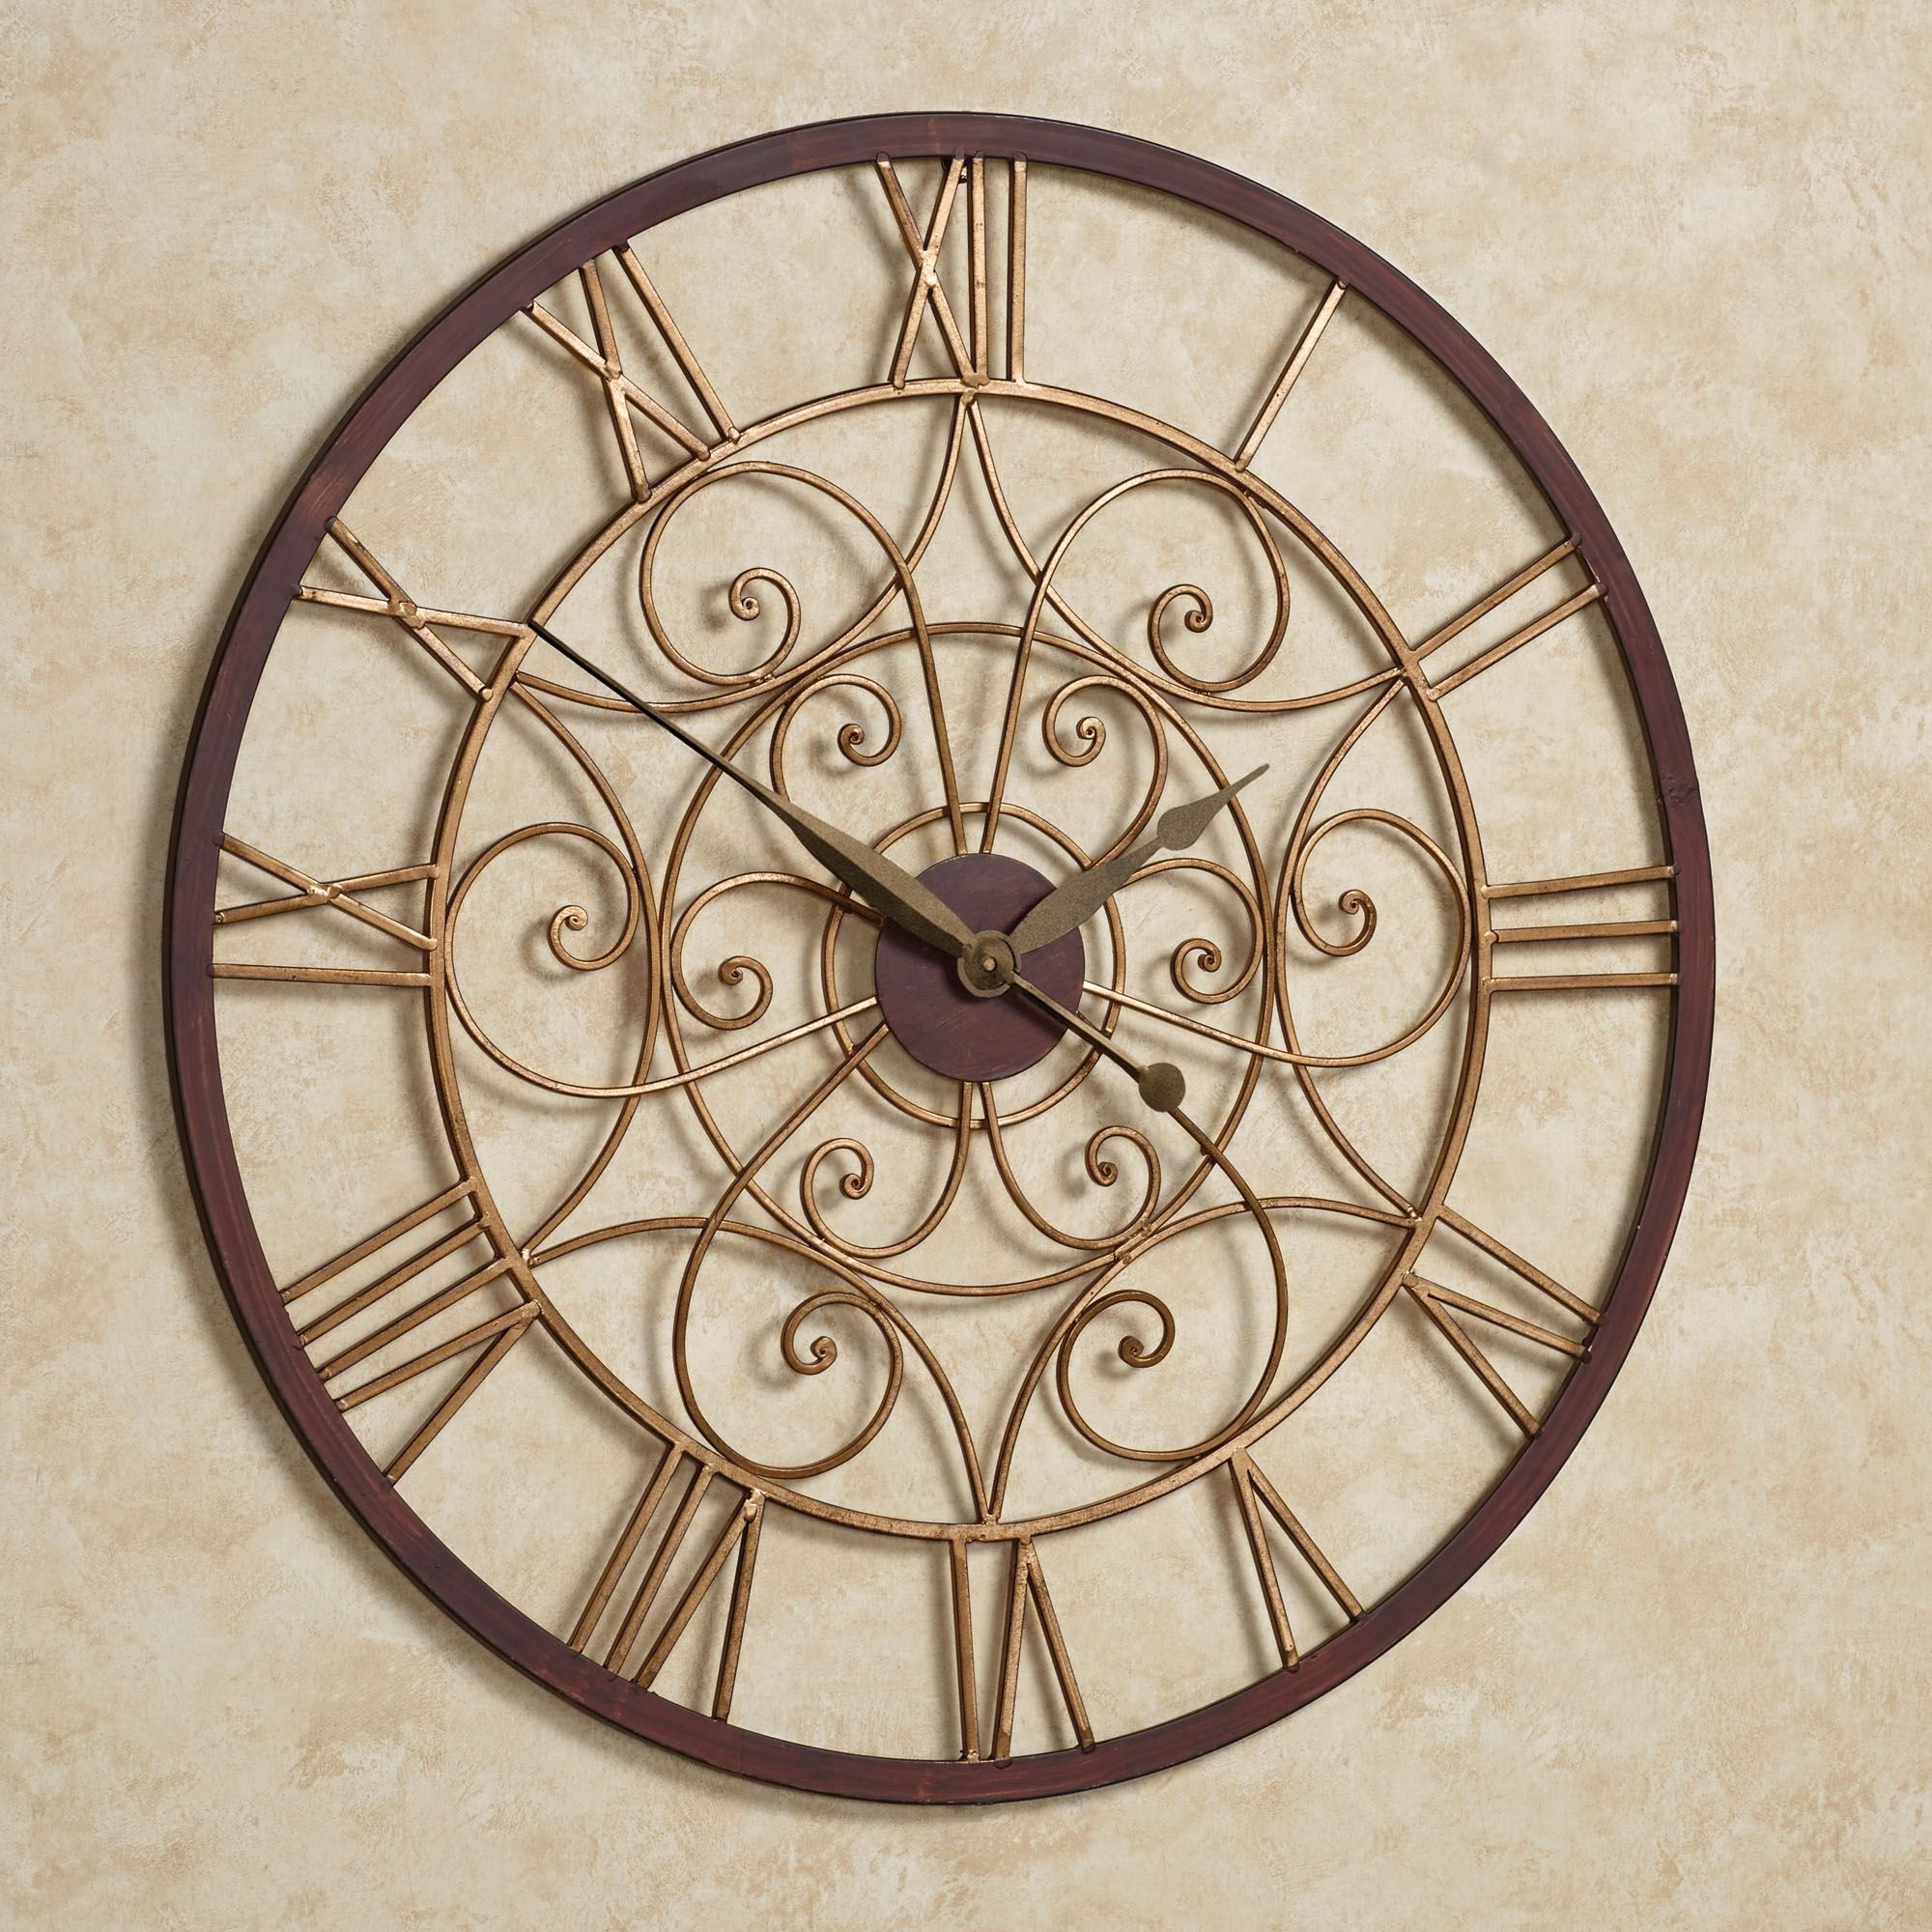 Ralston round metal wall clock wall clocks clocks and metal walls ralston round metal wall clock amipublicfo Images